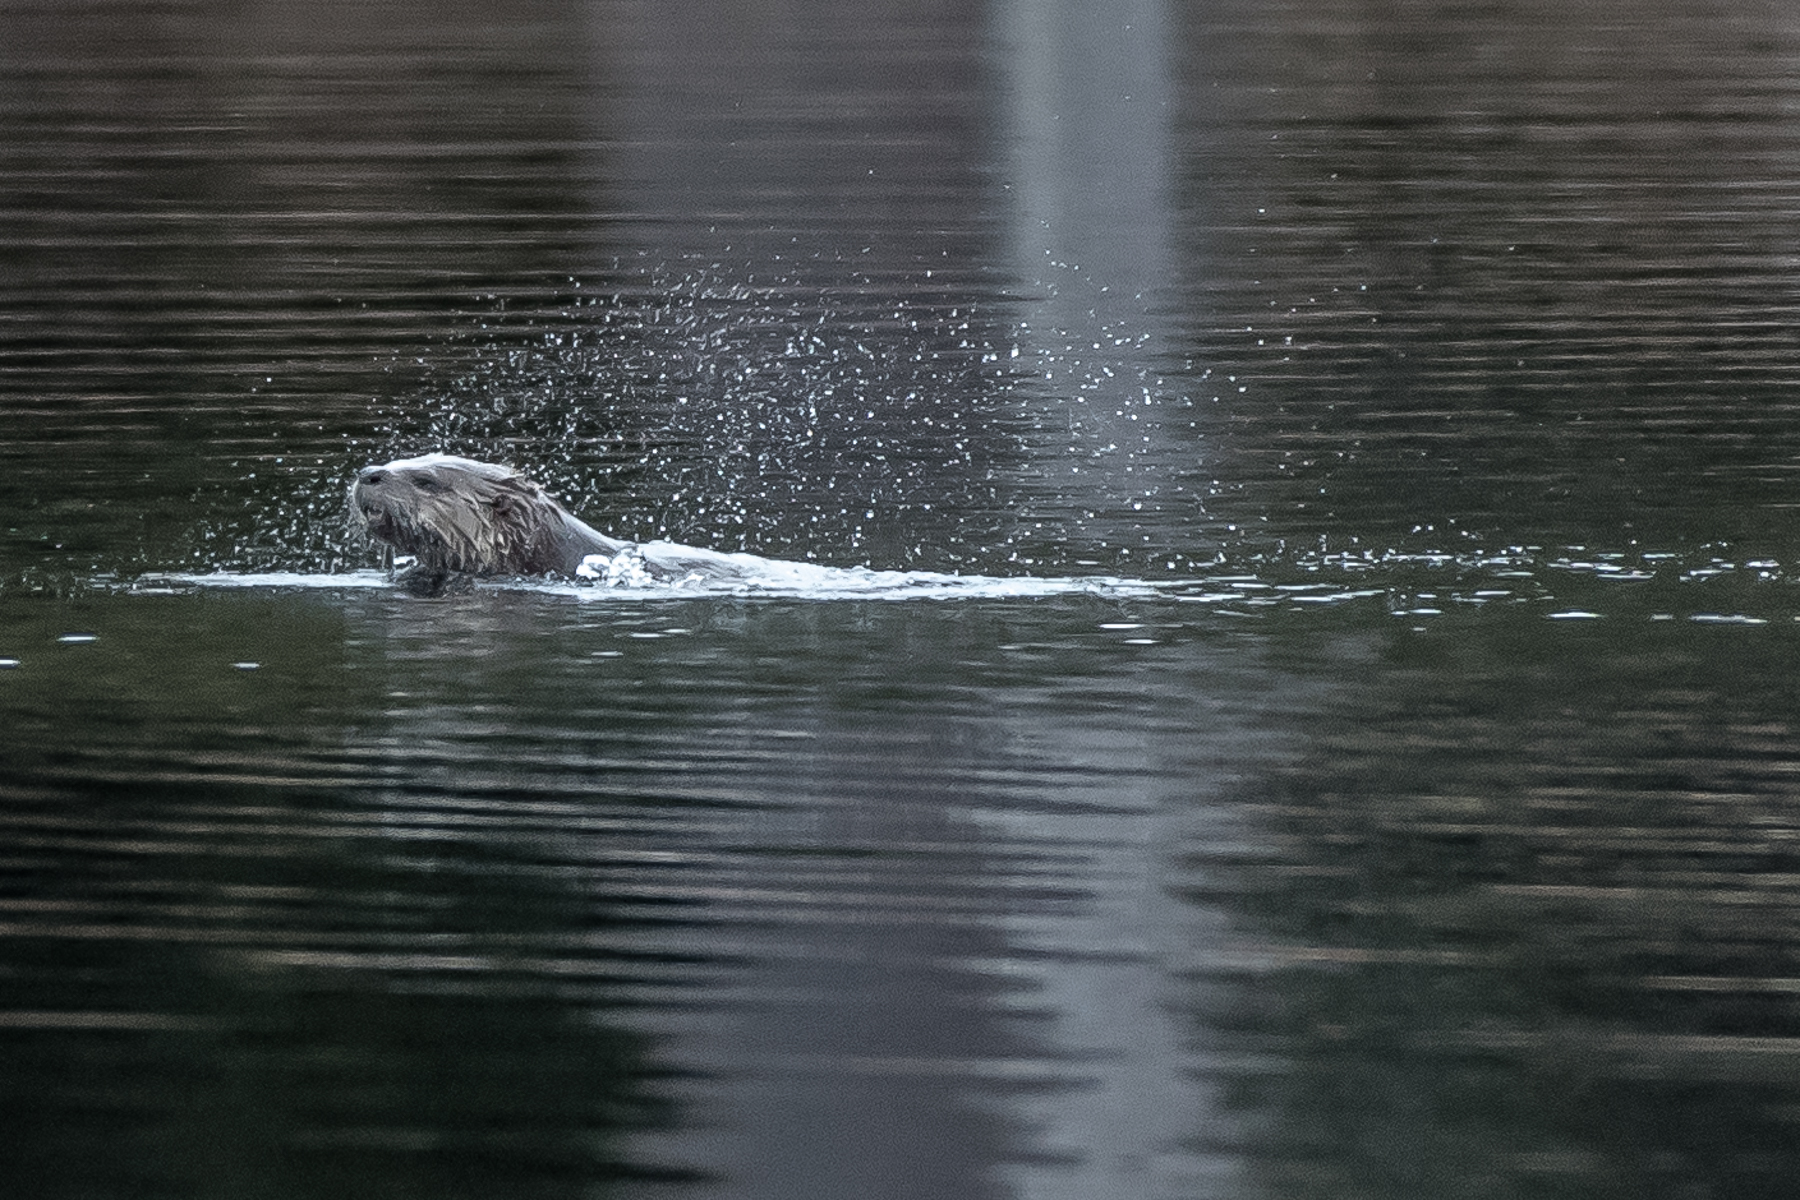 Ho Hum, another day, another otter     While sitting by a beaver pond this otter appeared fiercely fishing. Every time it surfaced it shook its head violently. I thought it would be fun to try to stop the action. 3/26/16